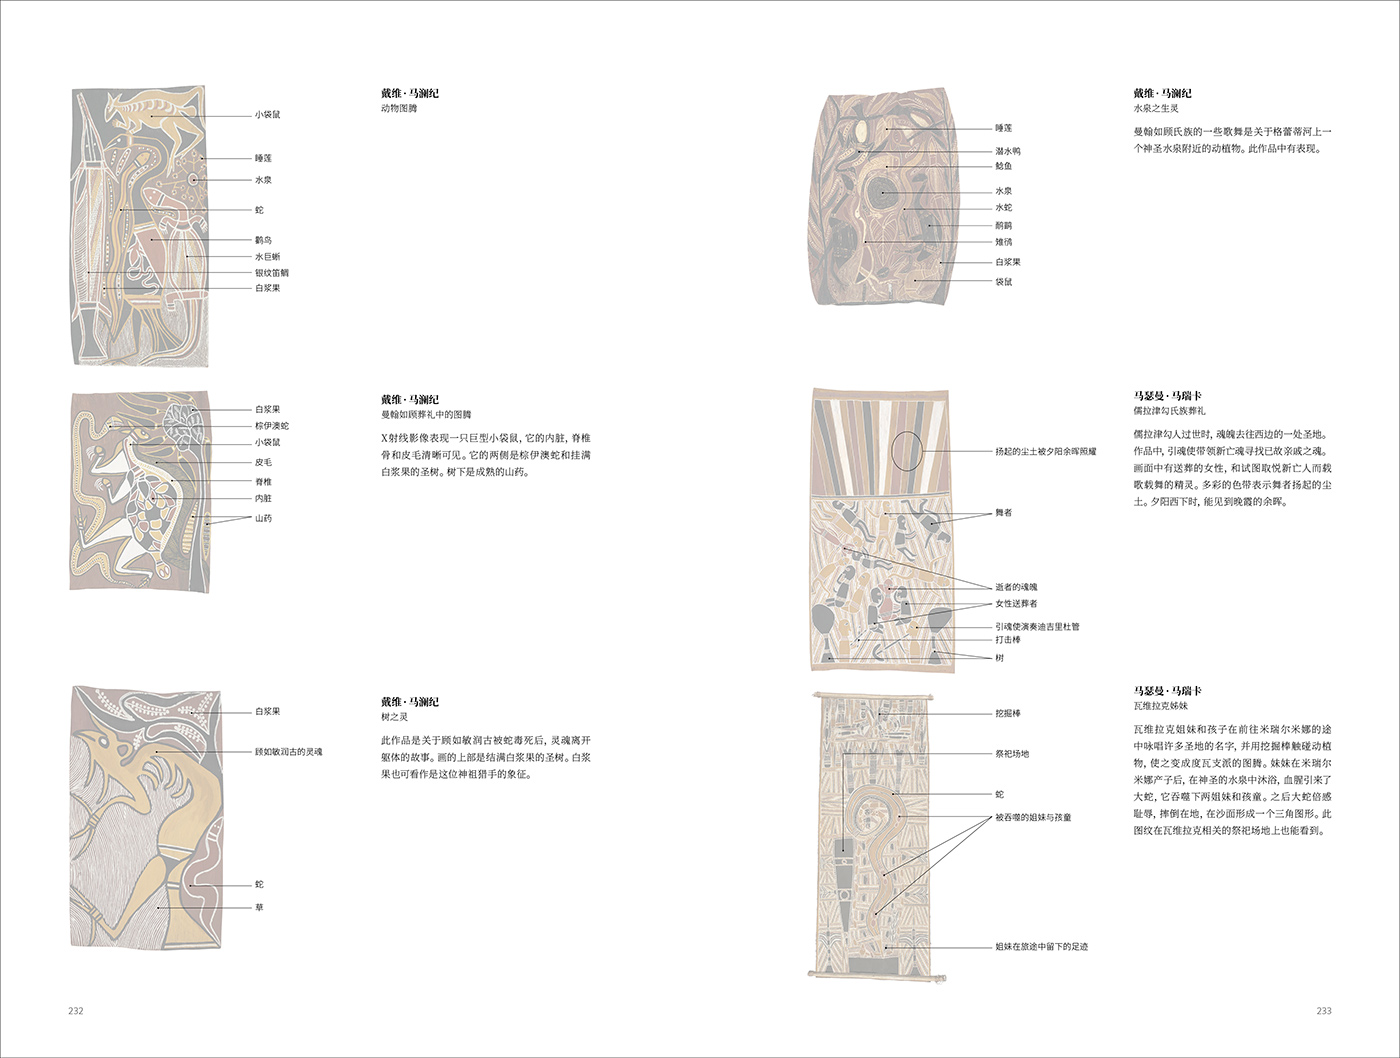 An image of page six from the Old Masters catalogue. It includes Indigenous bark paintings and text. - click to view larger image